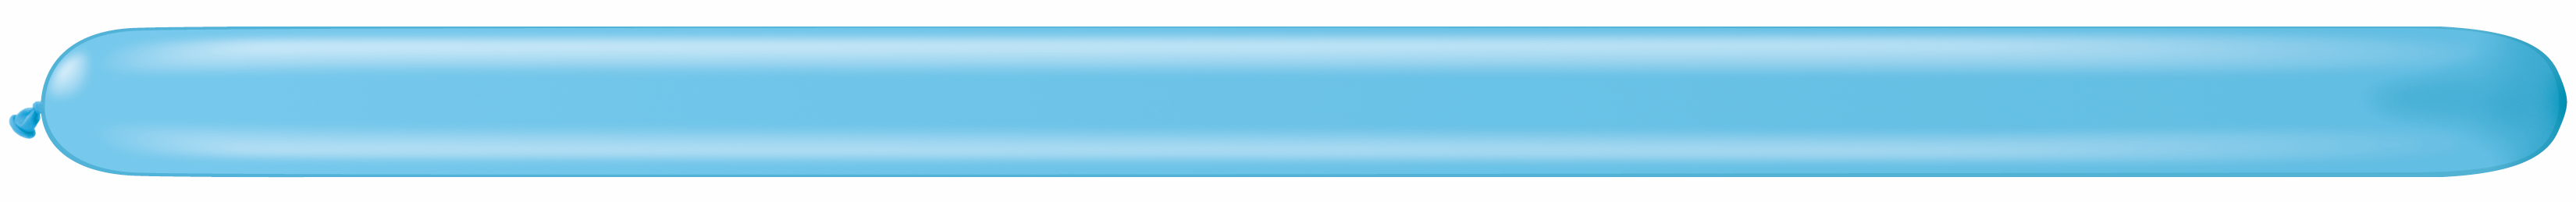 350Q Latex Balloons (100 Count) Pale Blue